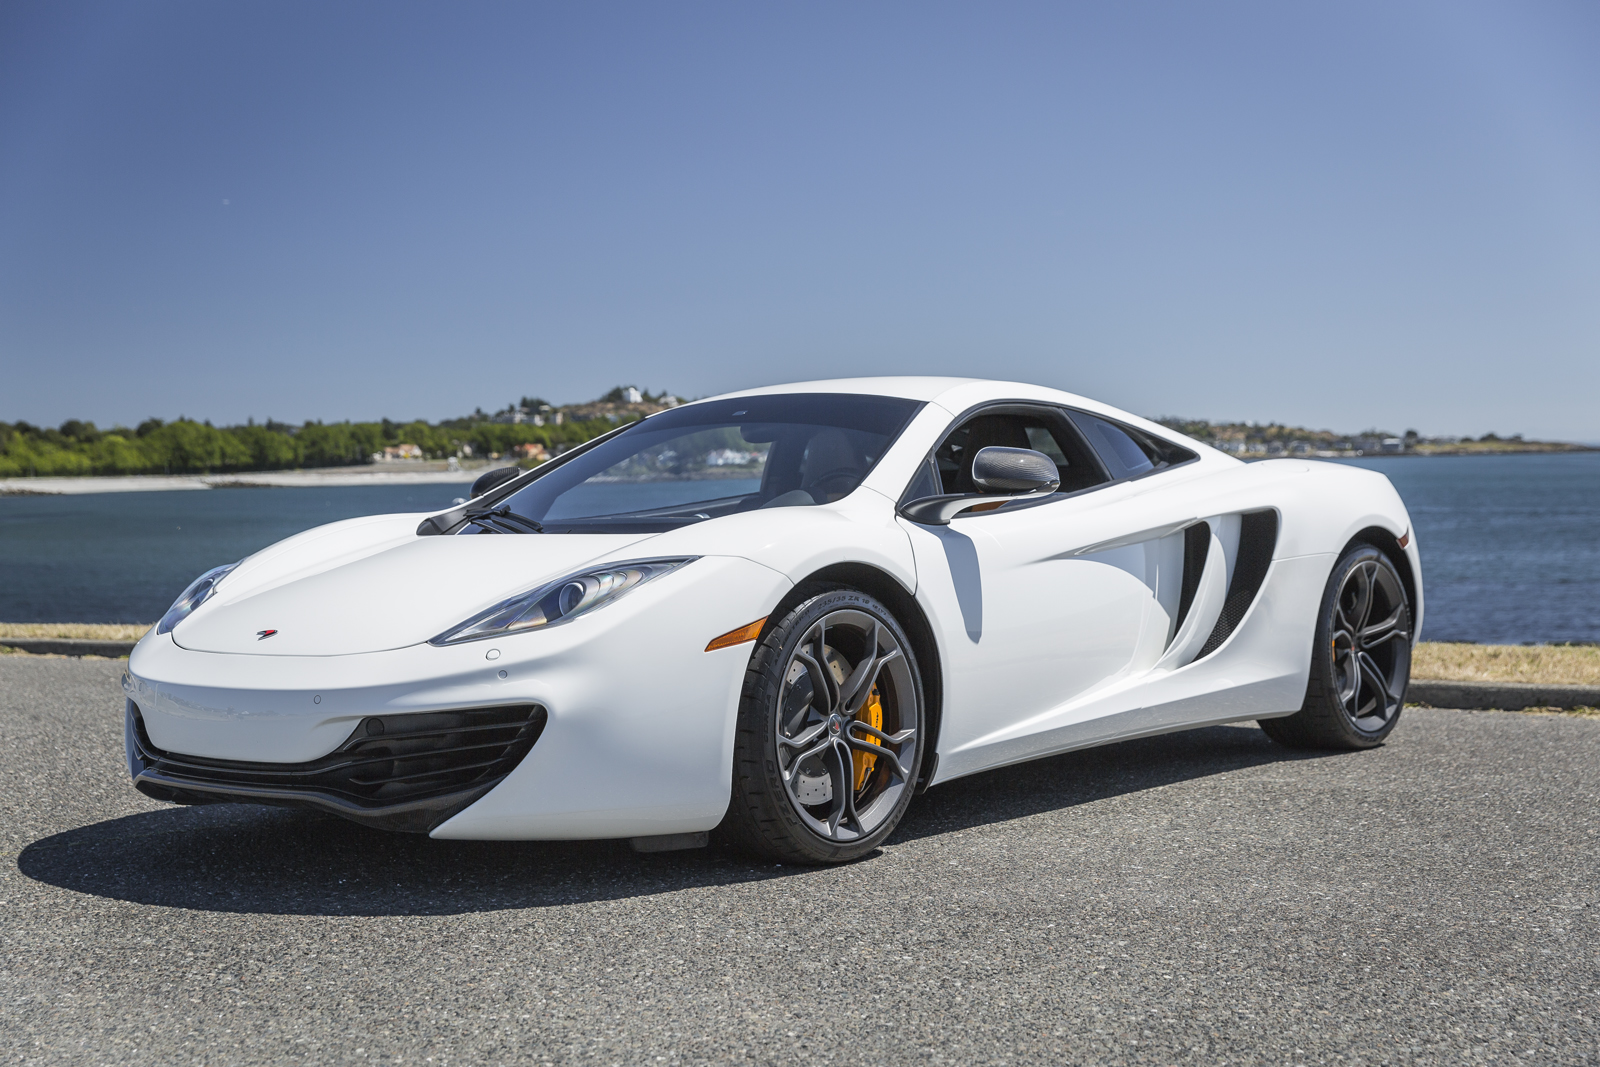 2012 McLaren MP4-12C for sale